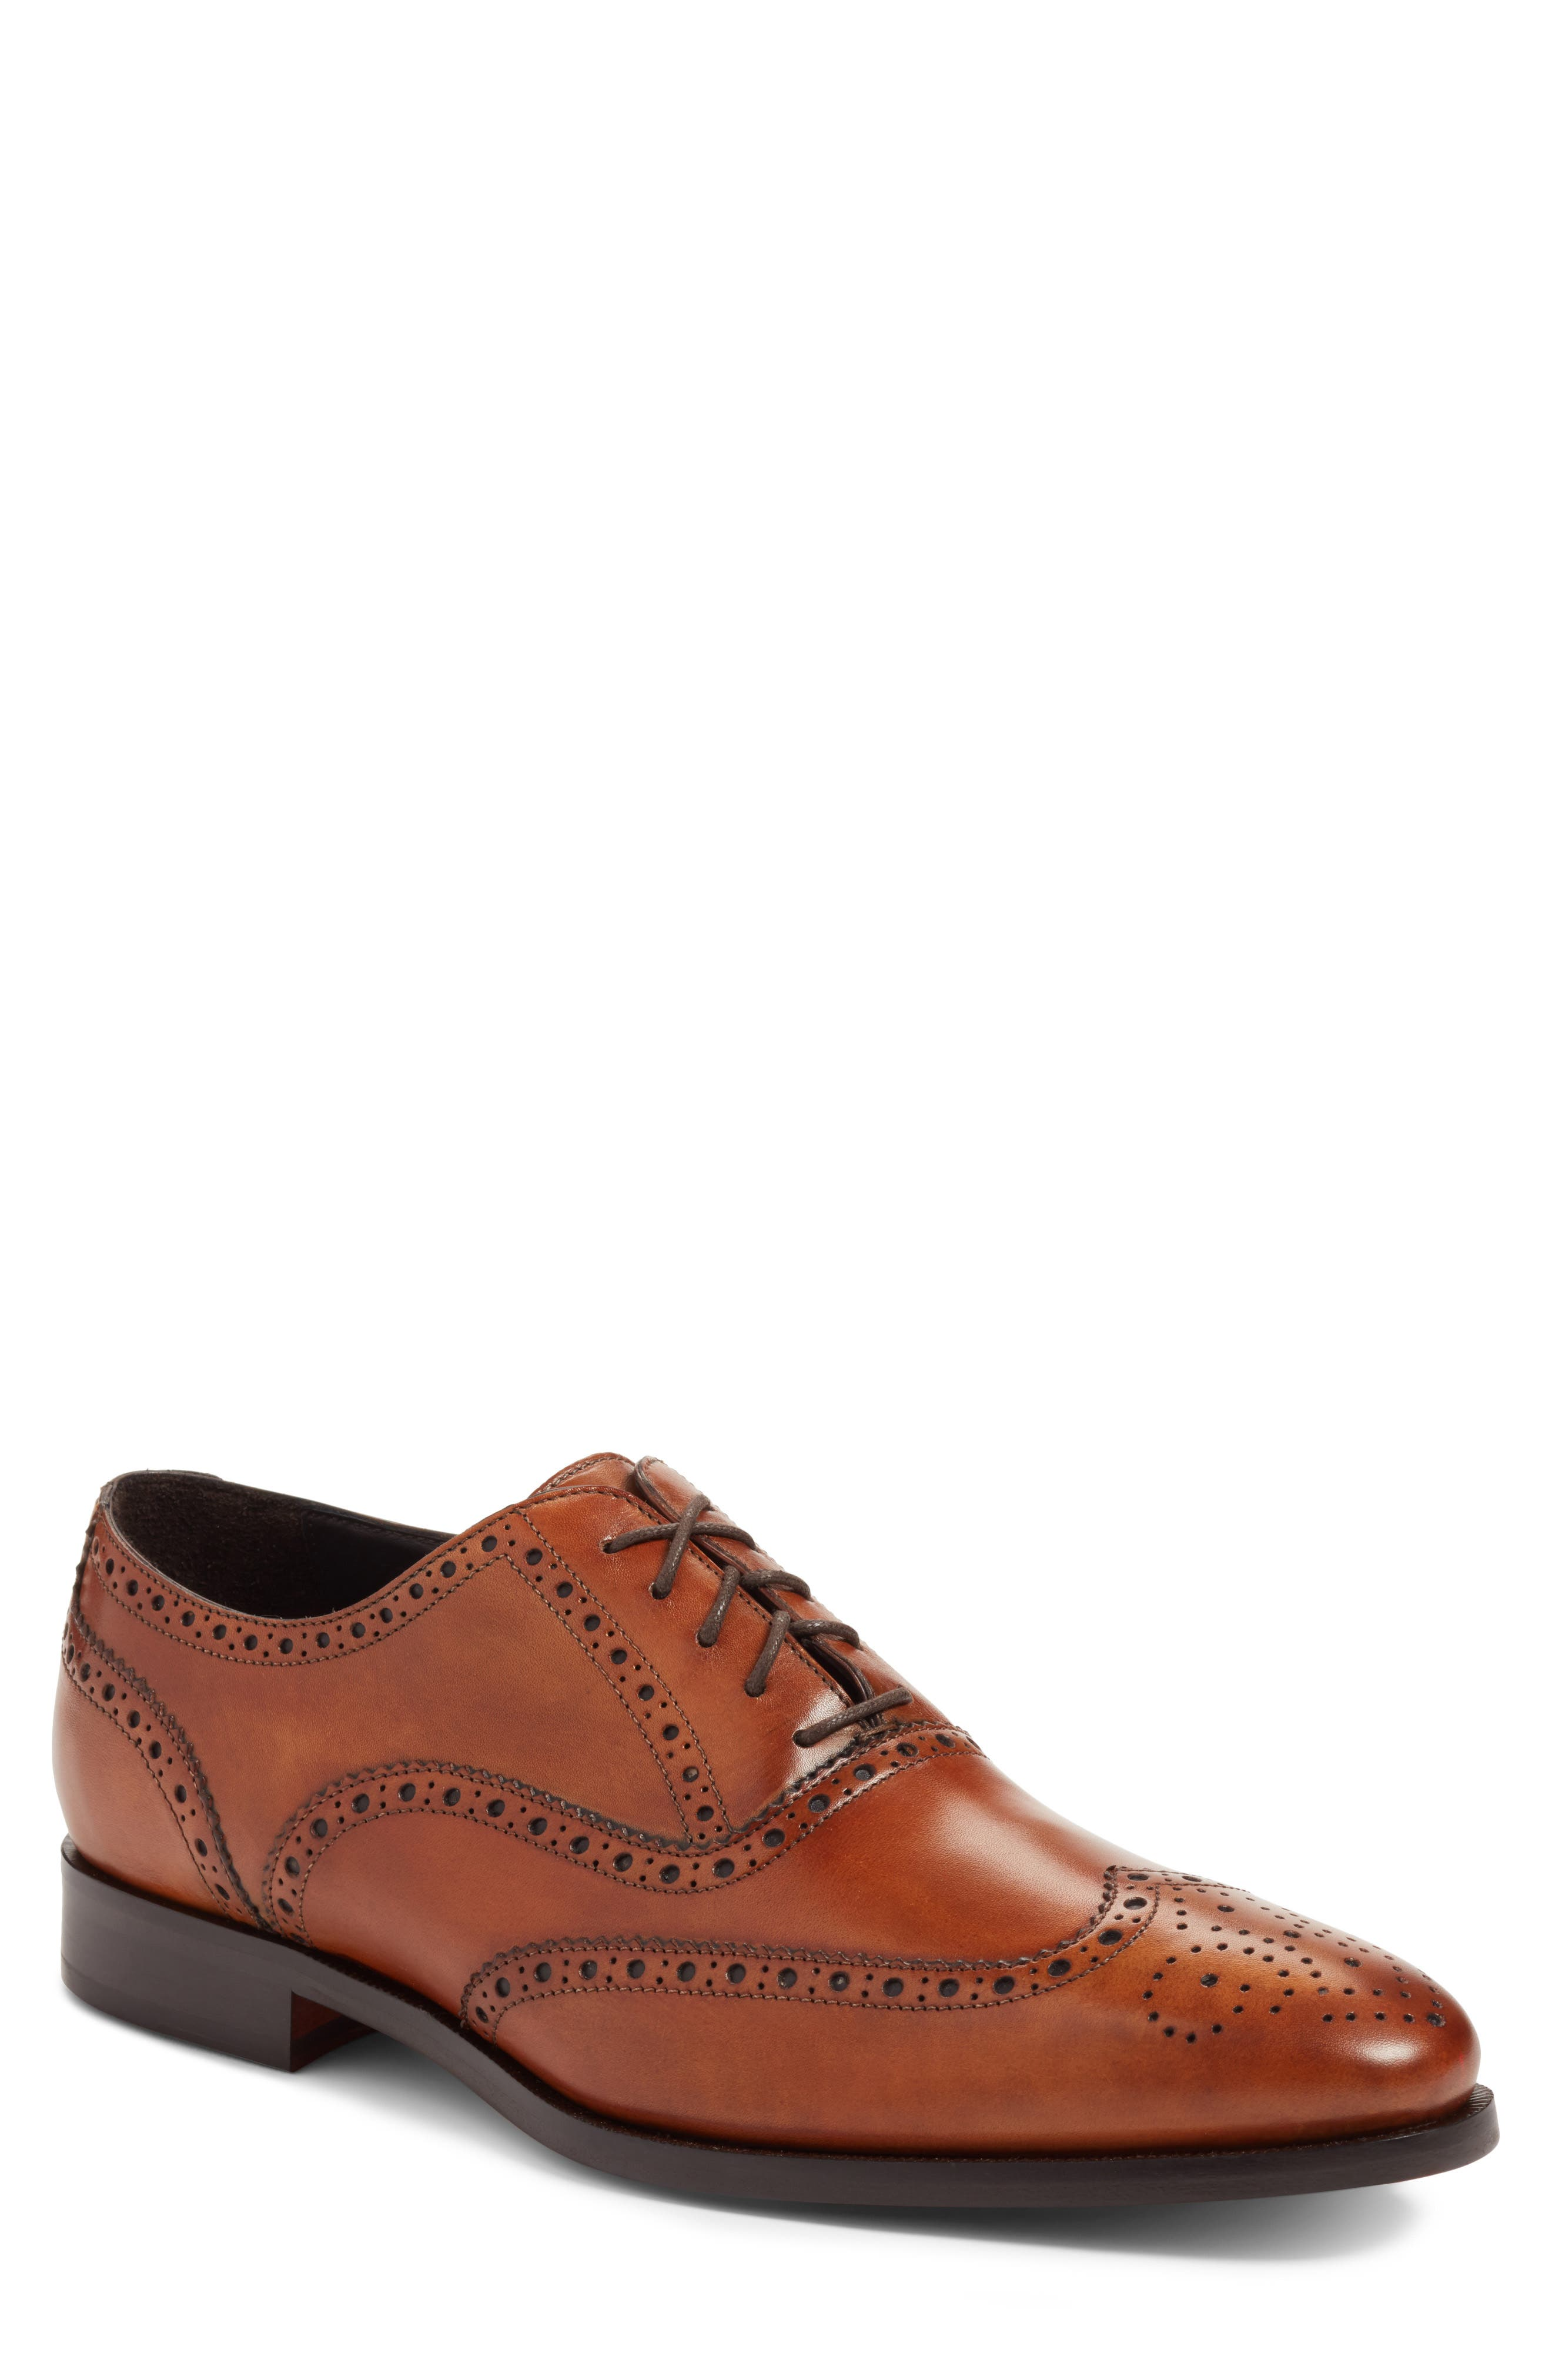 Ambler Leather Wingtip Oxfords in Cognac Leather